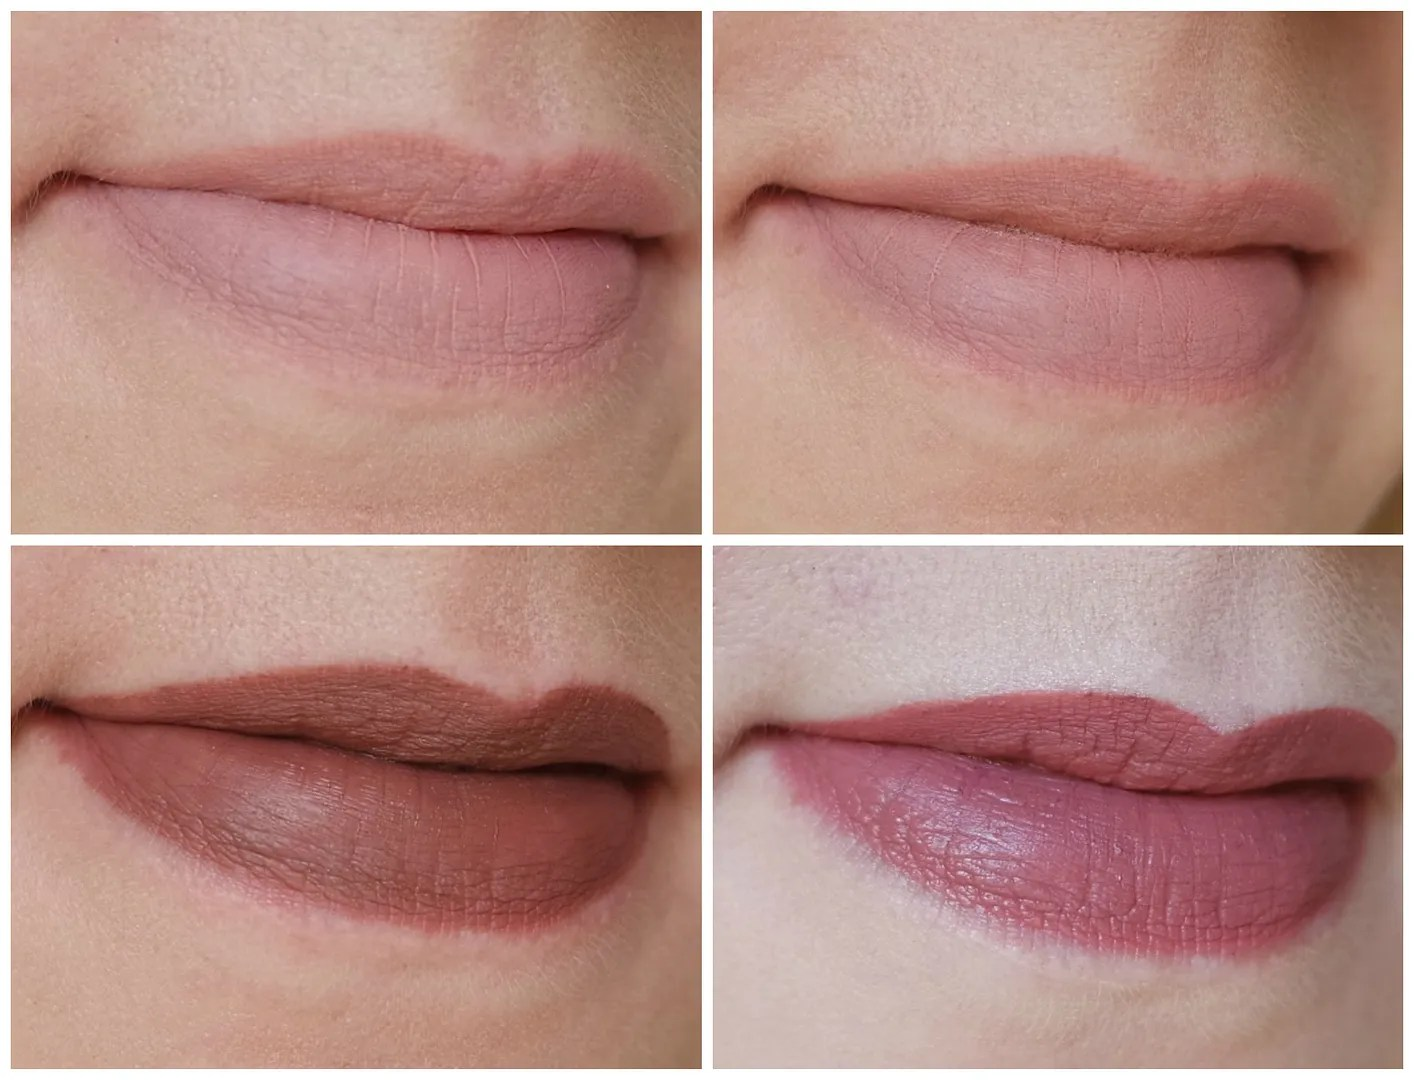 NYX Lip Lingerie Satin Ribbon, Lace Detail, Teddy NYX Liquid Suede Soft Spoken review swatch